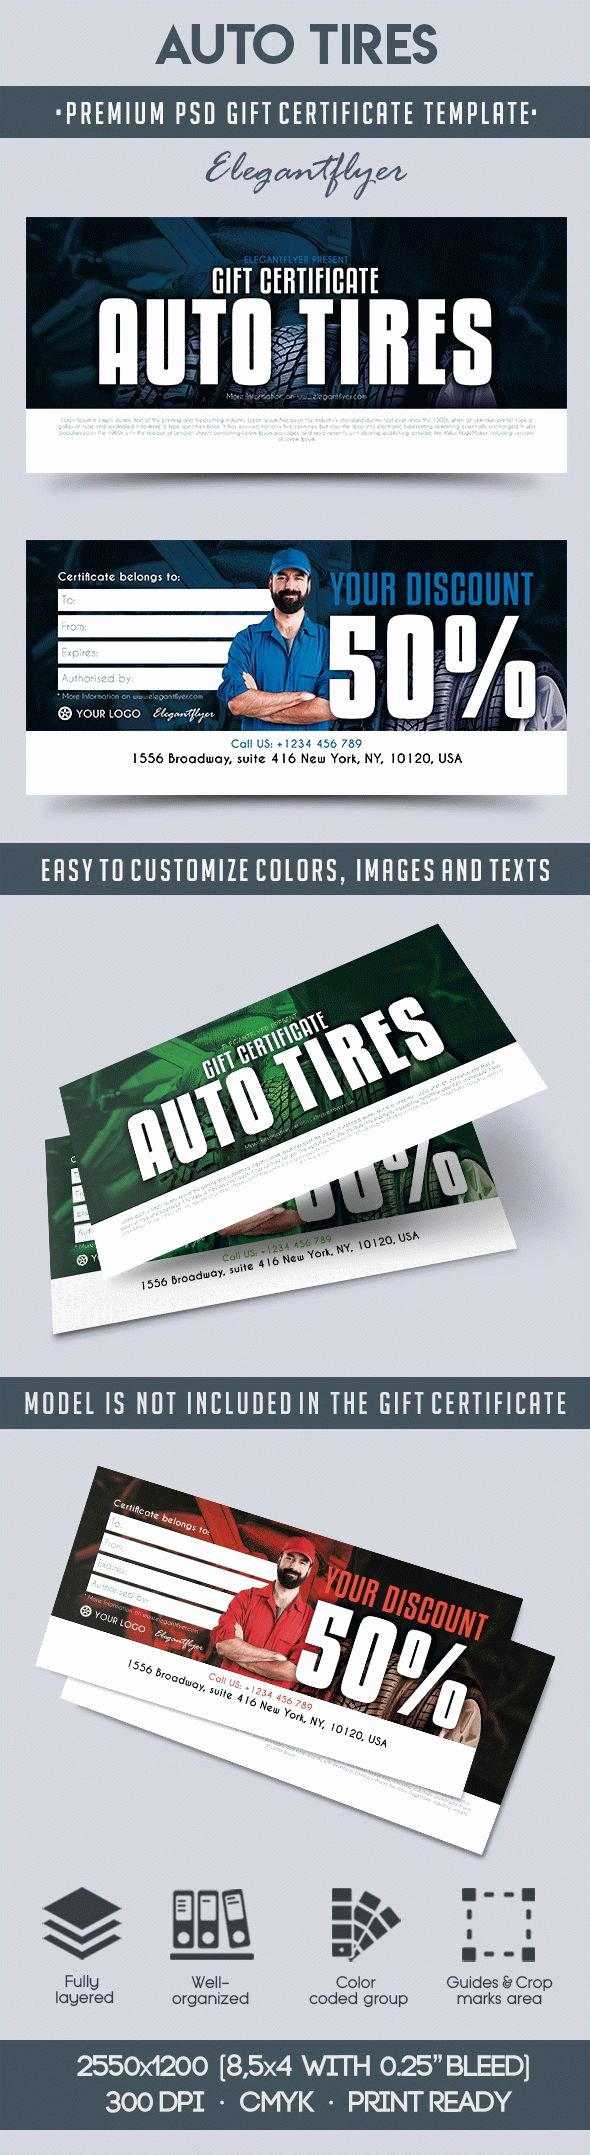 Auto Detailing Gift Certificate Template New Auto Tires – Premium Gift Certificate Psd Template – by